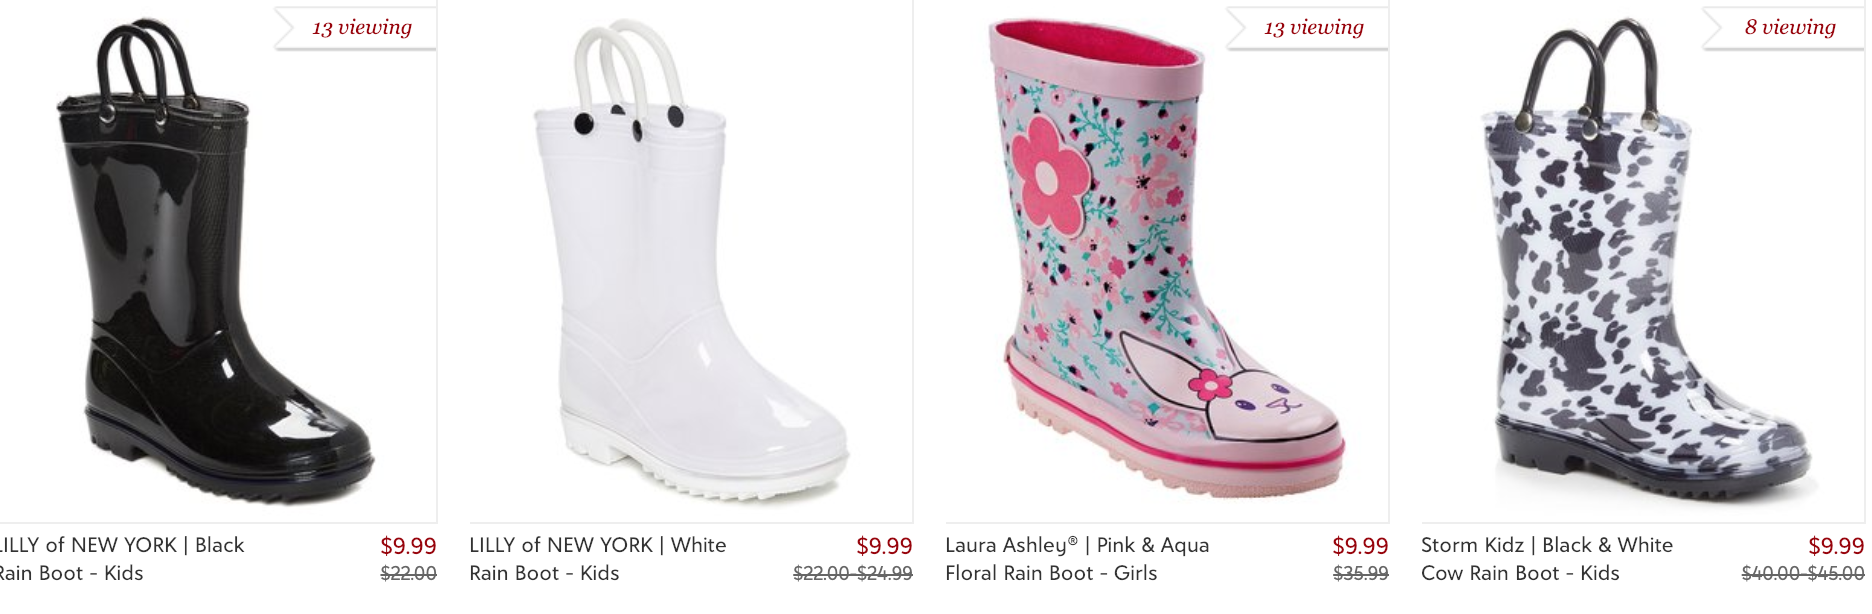 Kids Rain Boots Only $9 99 (reg  $25+) at Zulily :: Southern